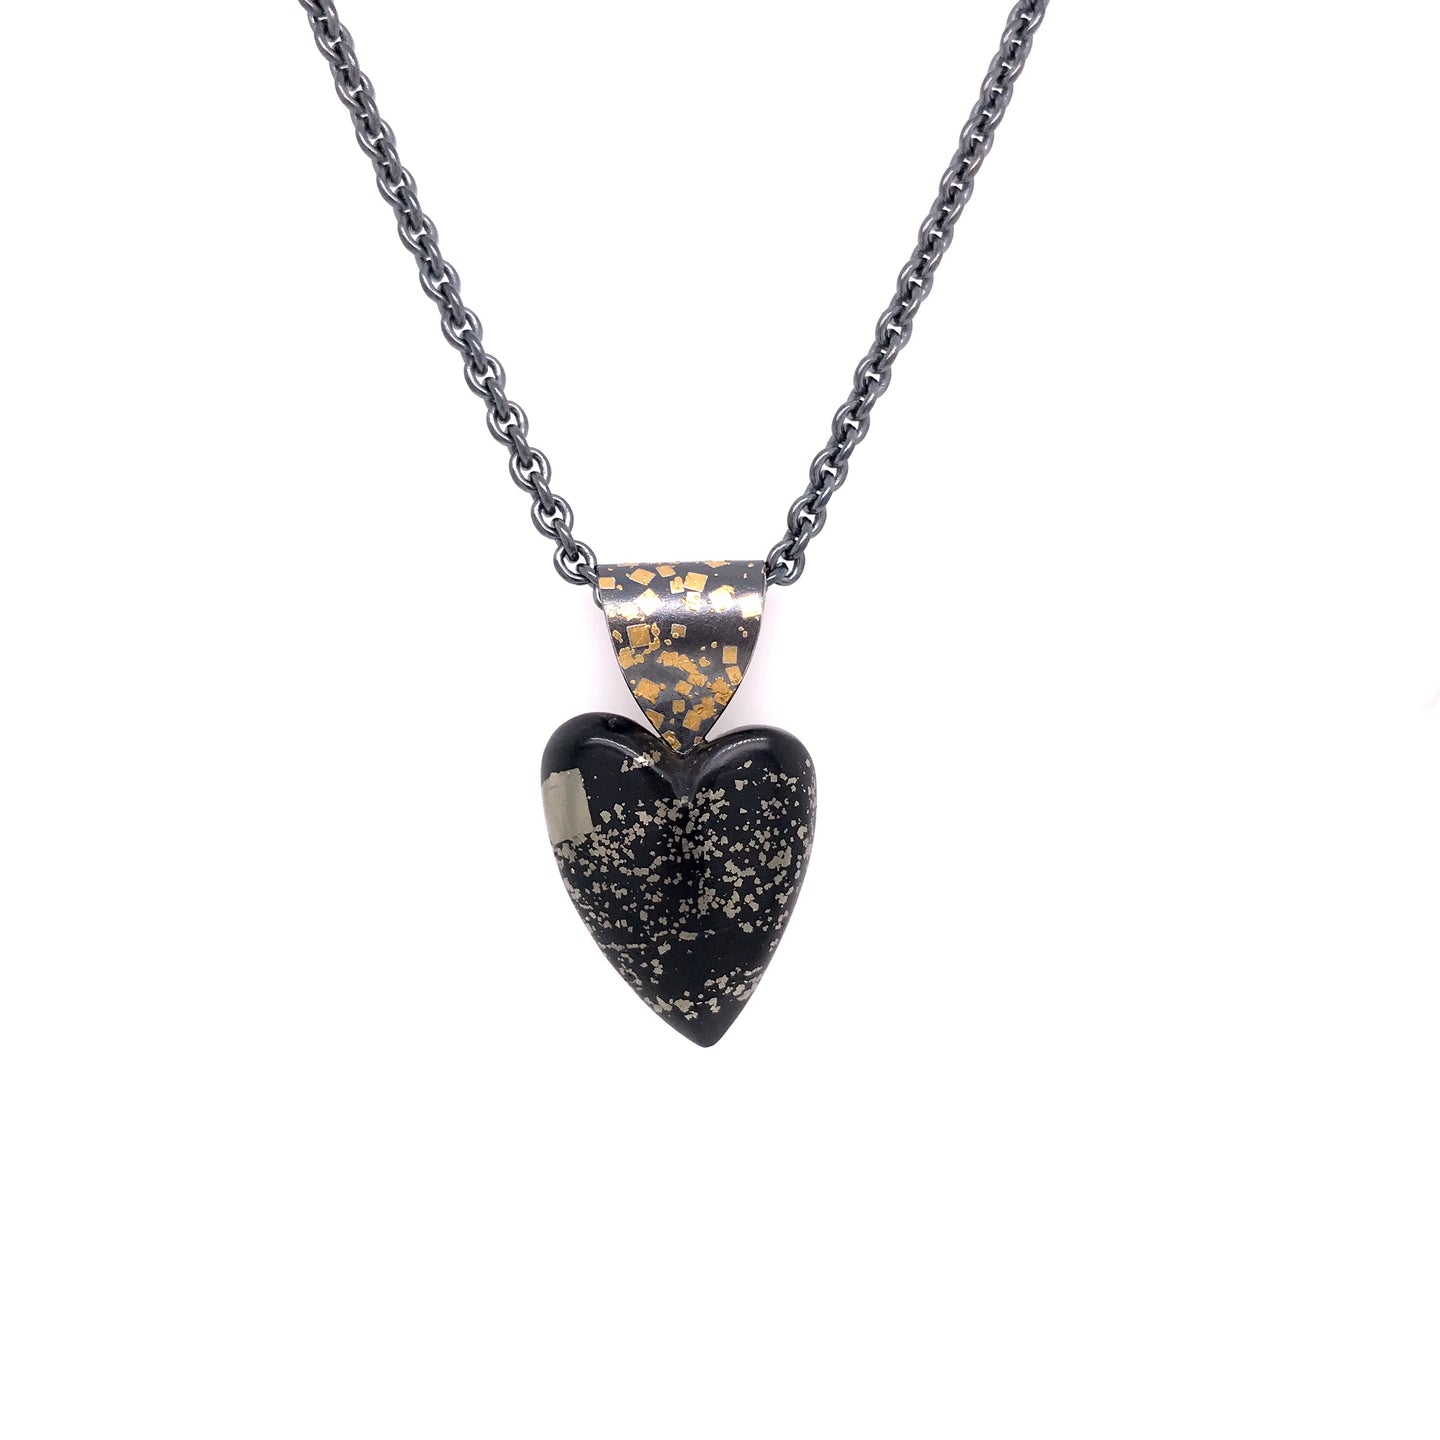 Slate Pyrite Heart Necklace | Art + Soul Gallery